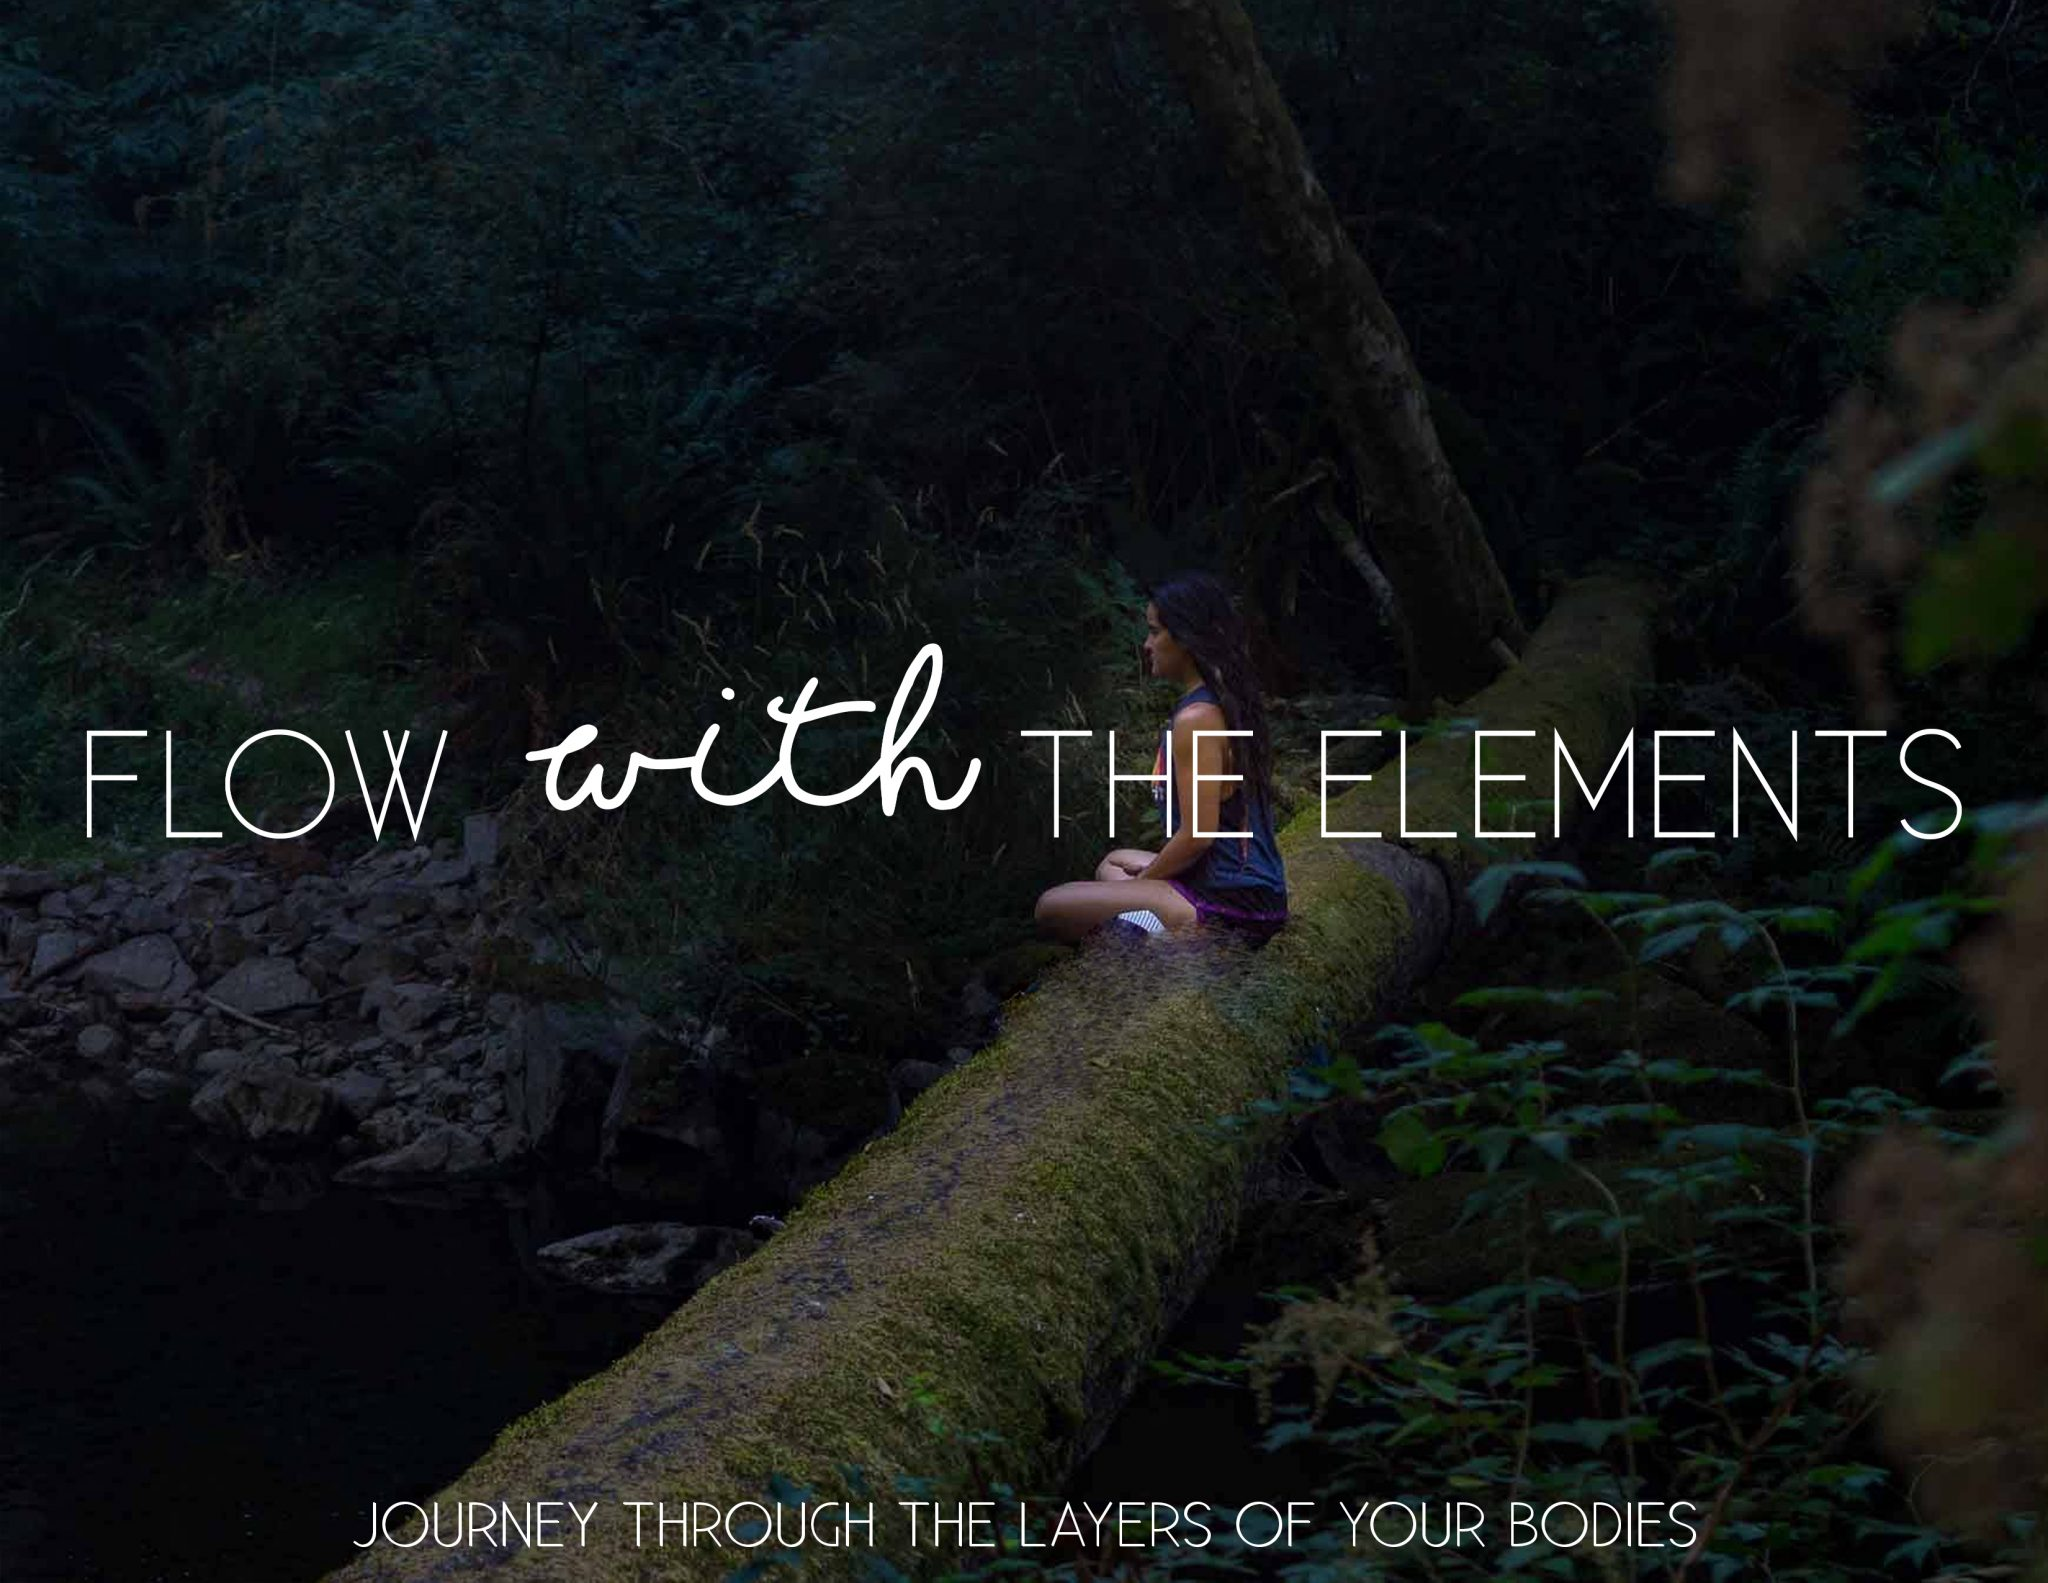 Flow With The Elements by Lorena Quintero < Head + Heart